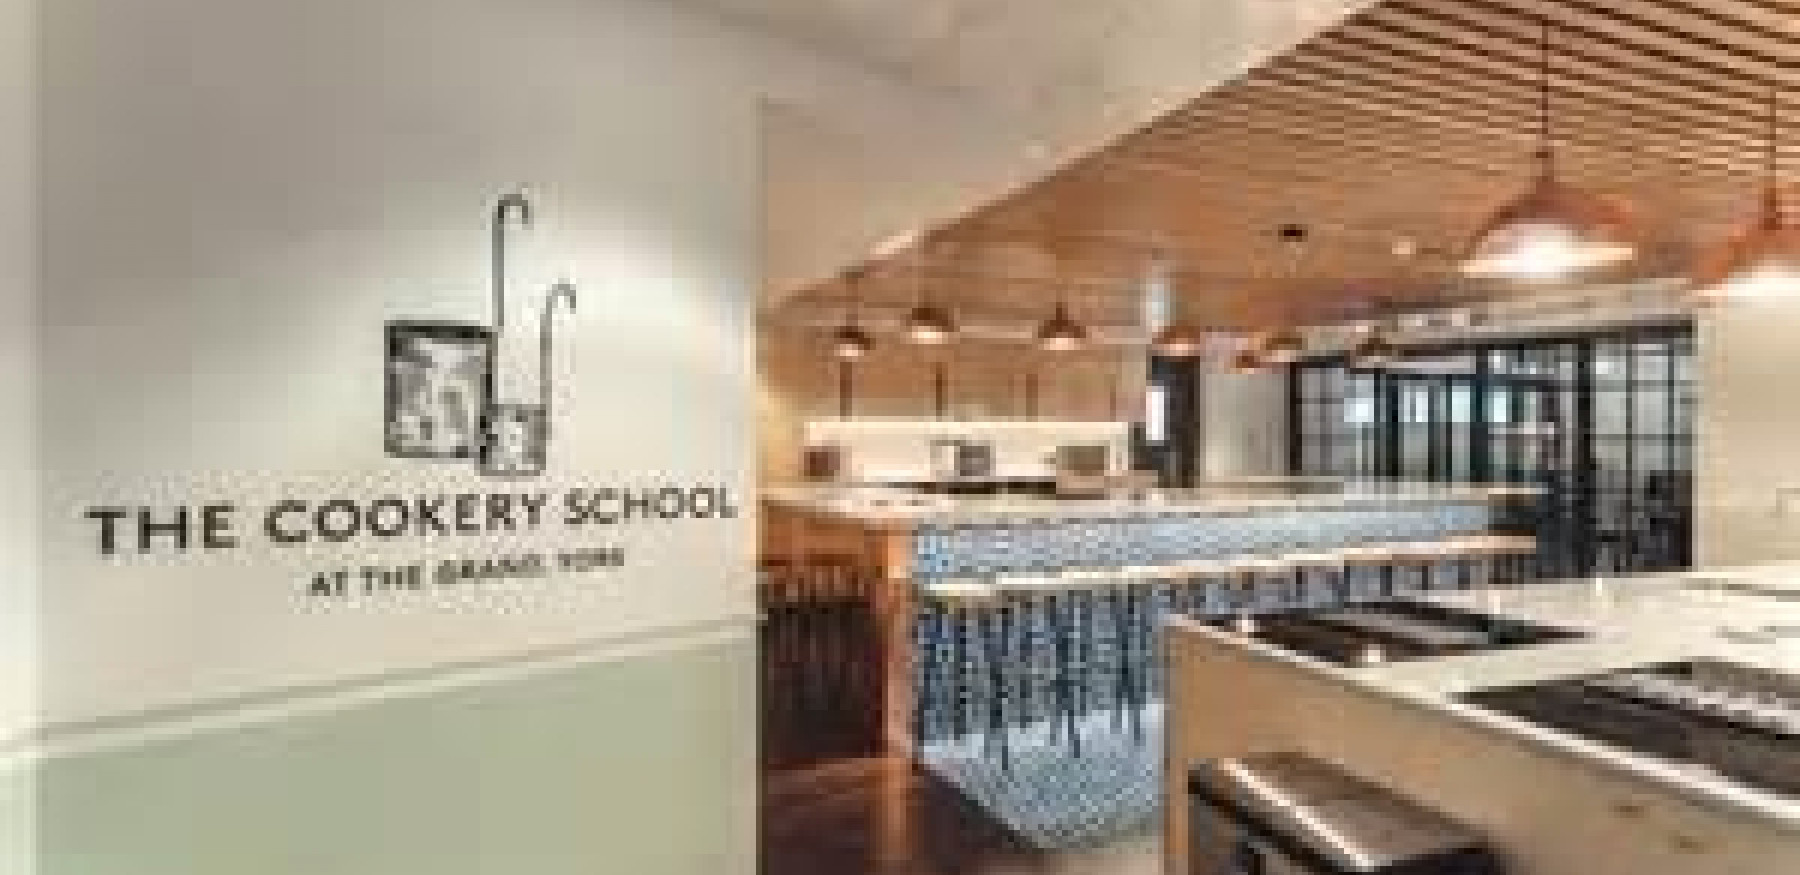 Cookery school picture 3 172785450